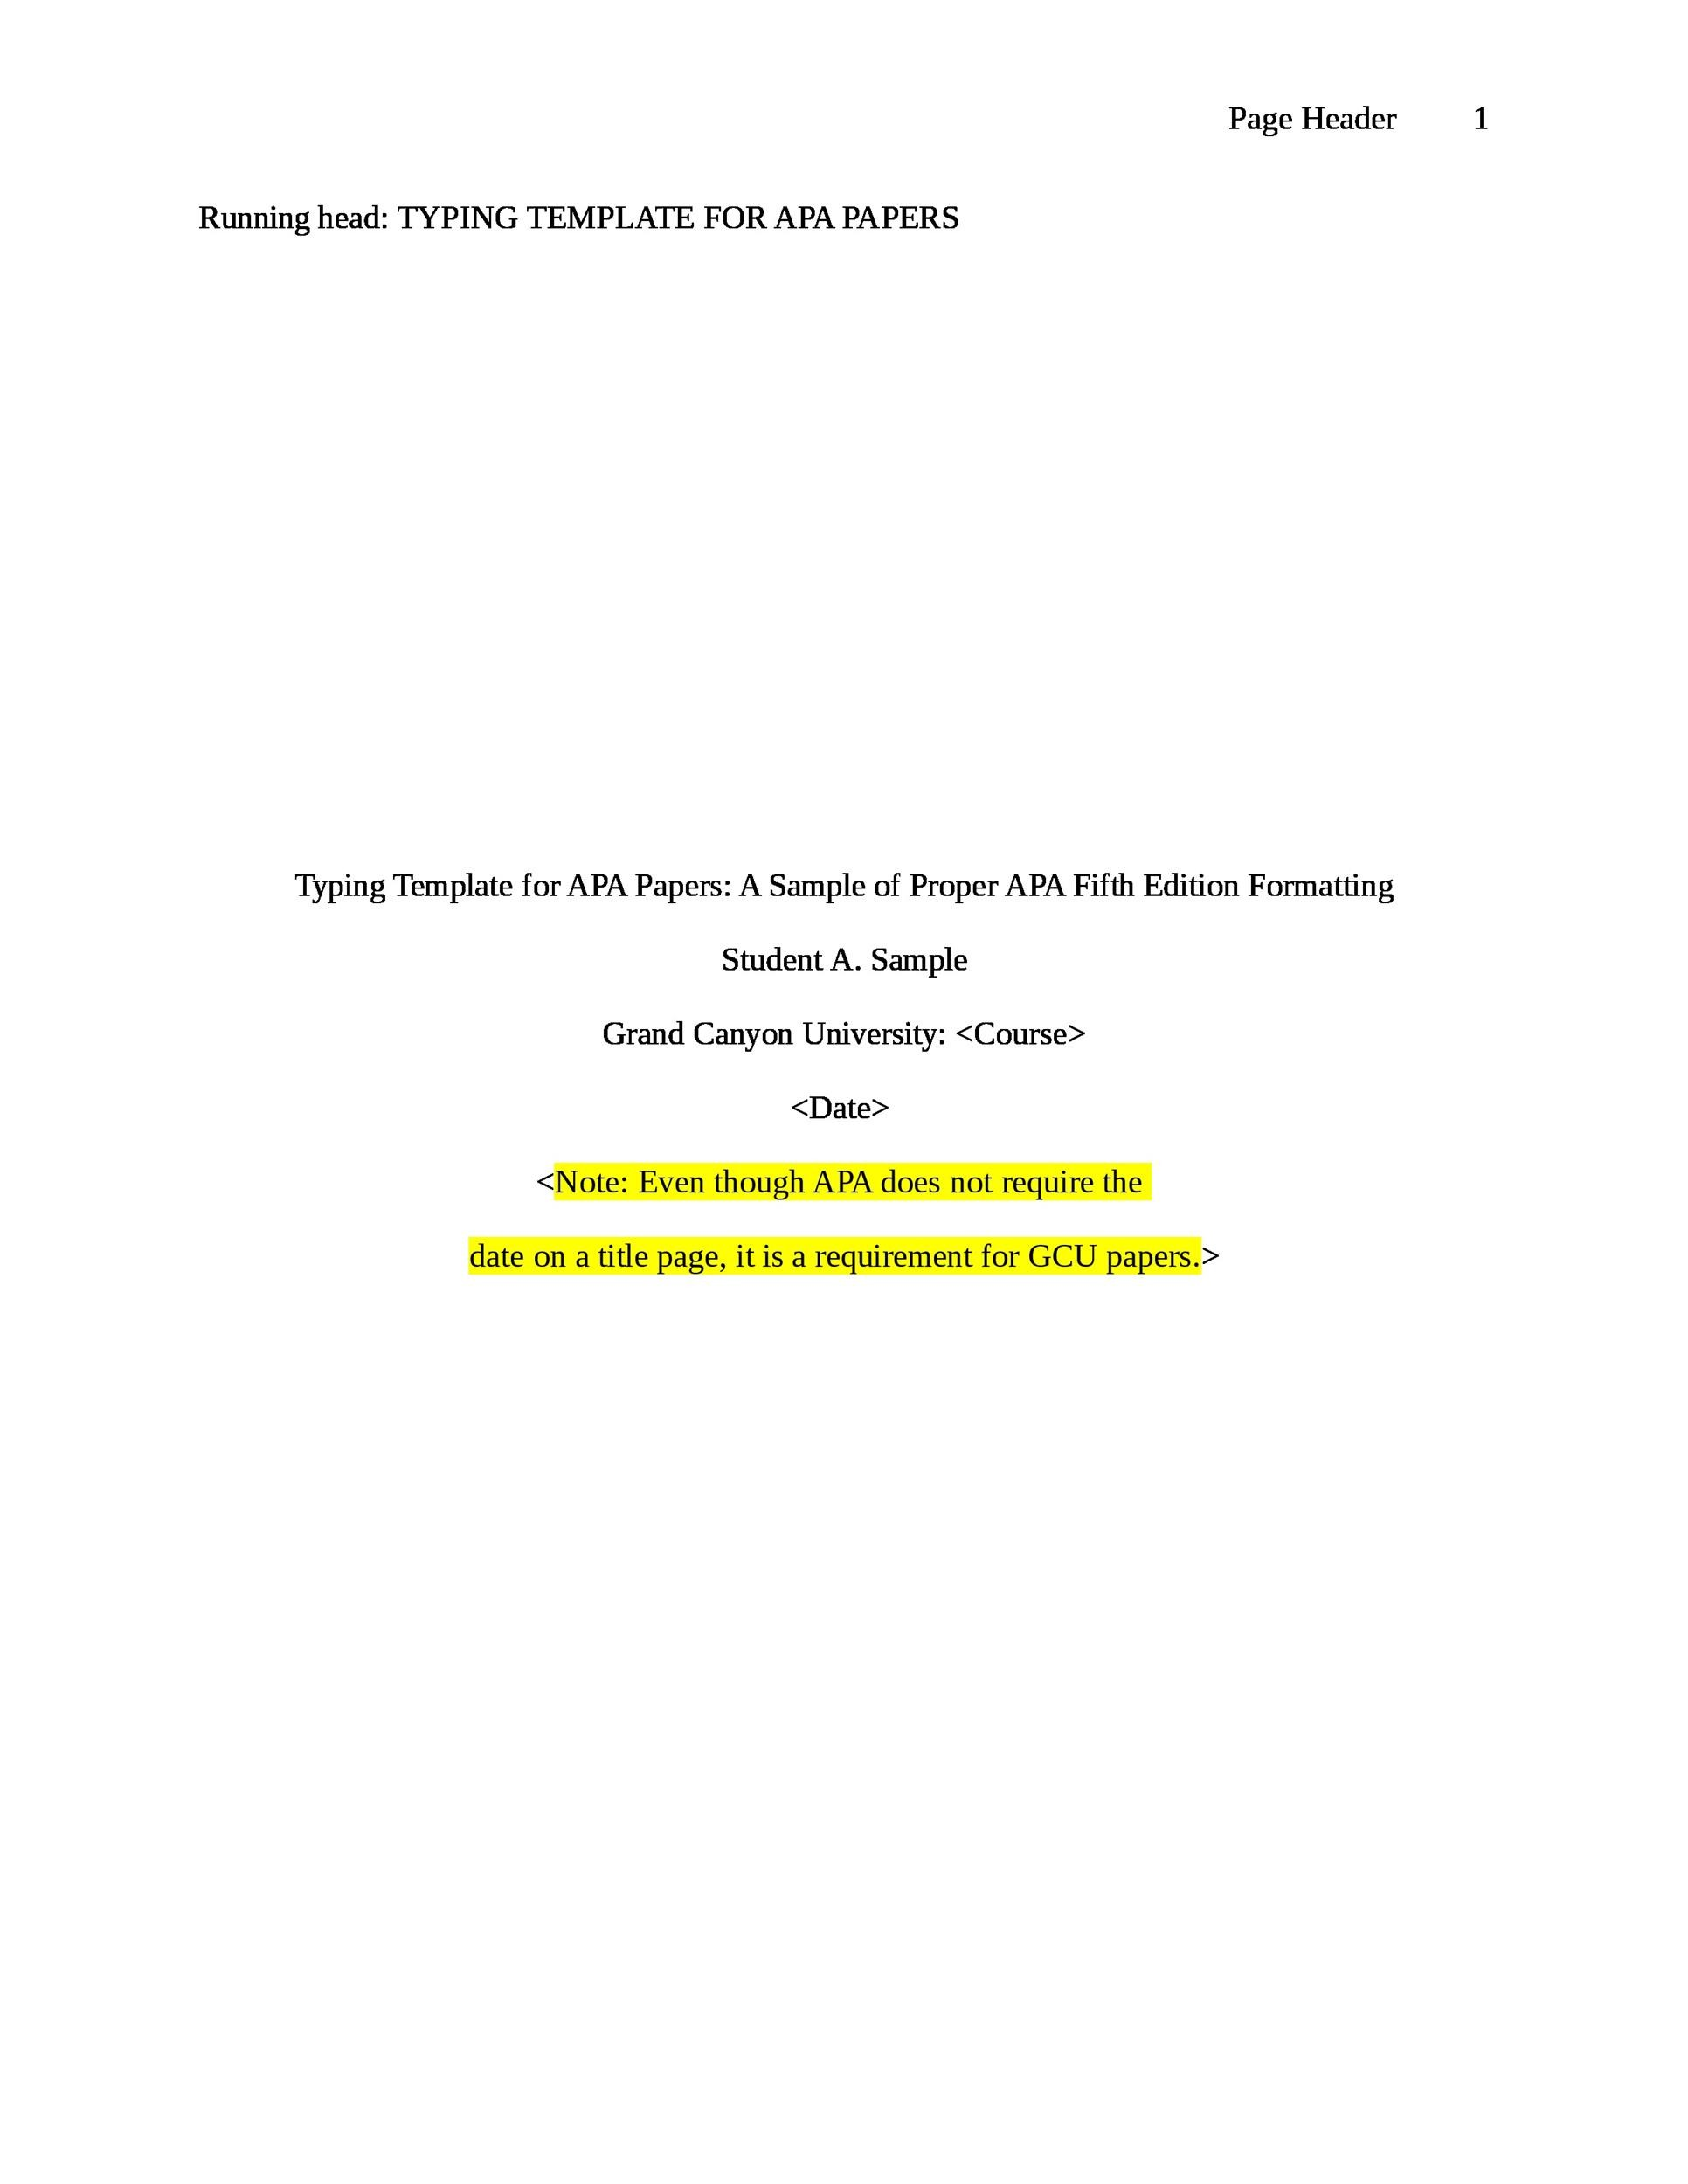 apa writing style template Writing'yourthesis thesiscompletionproceduresdonotspecifyaspecificstylemanual,howeverthe6theditionofthe  writing your thesis in apa style.